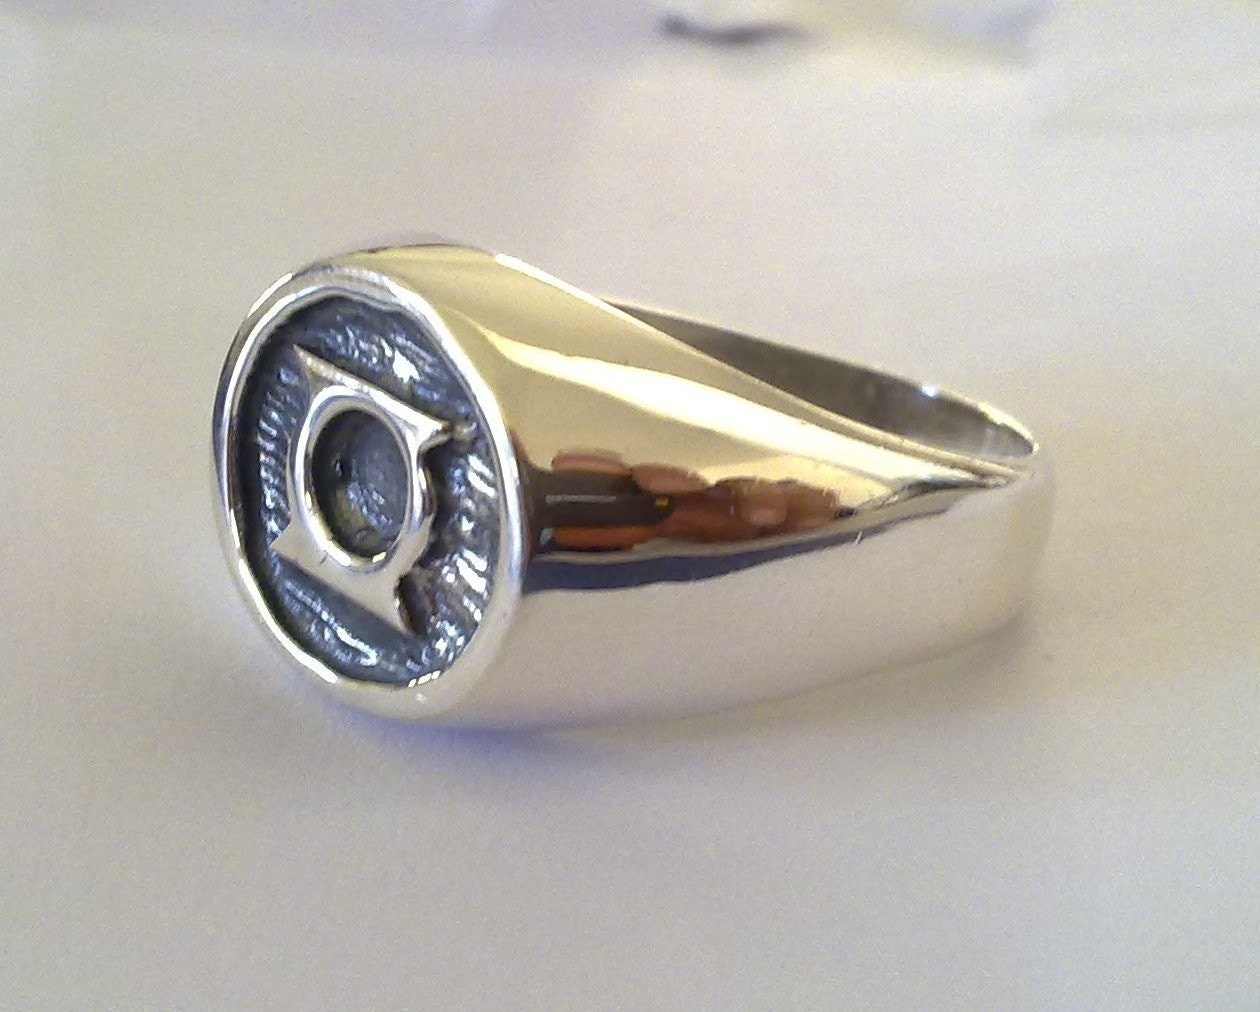 green lantern corps ring sterling silver 925 by vikigreen